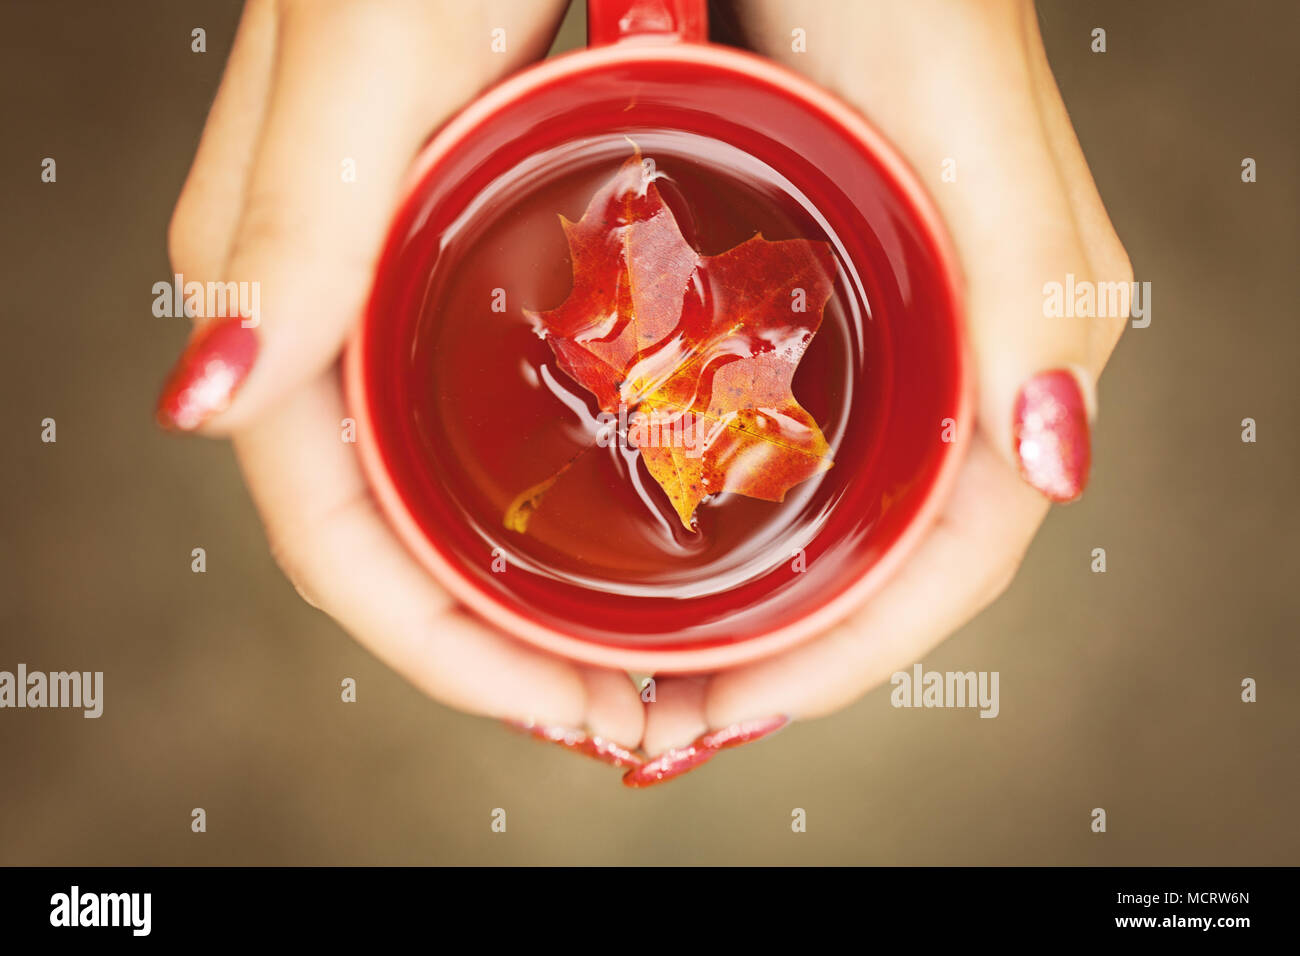 Autumn Leaves and Hot Steaming Cup in Female Hands. Seasonal, Morning Tee, Sunday Relax Concept - Stock Image